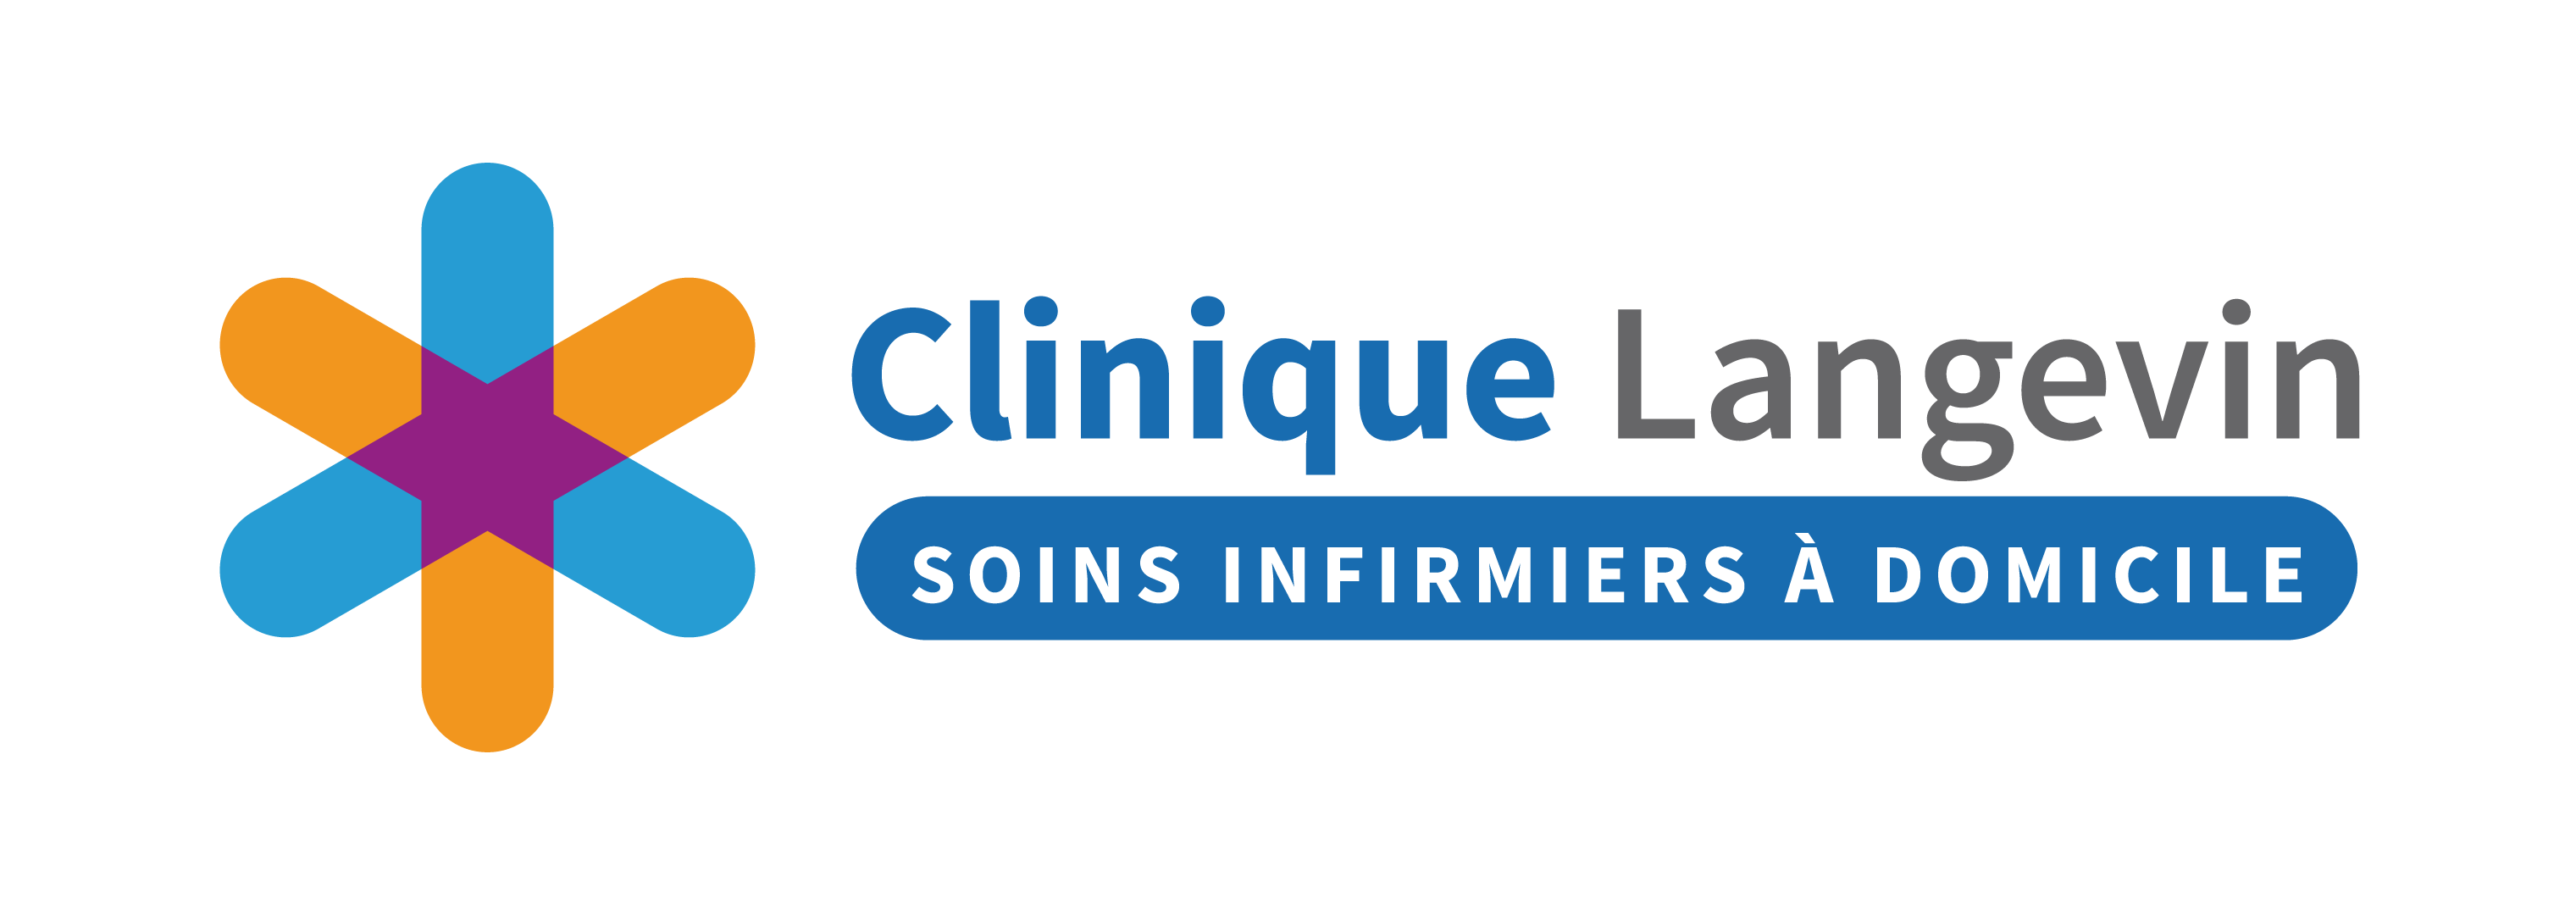 logo_Clinique_Langevin(transparent)